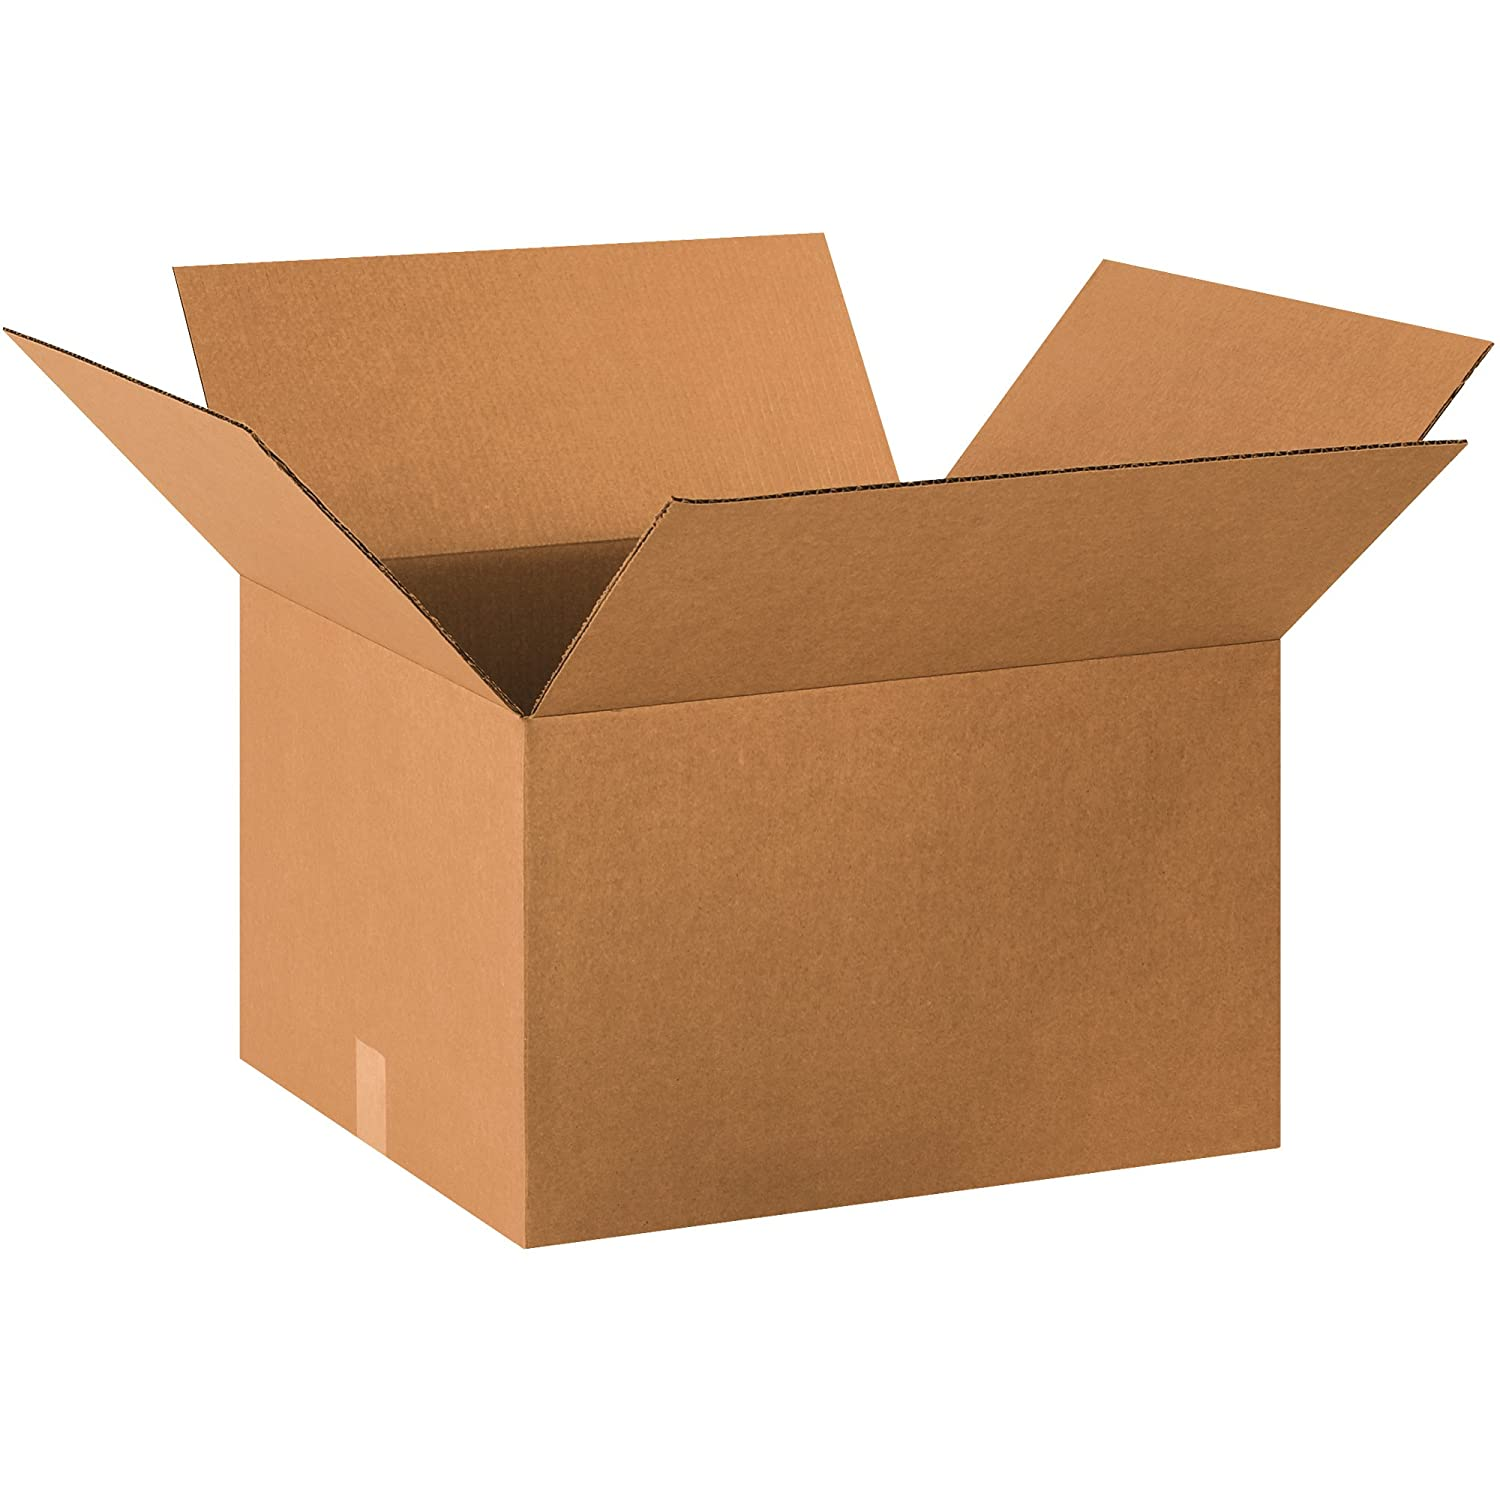 boxes shop amazon com